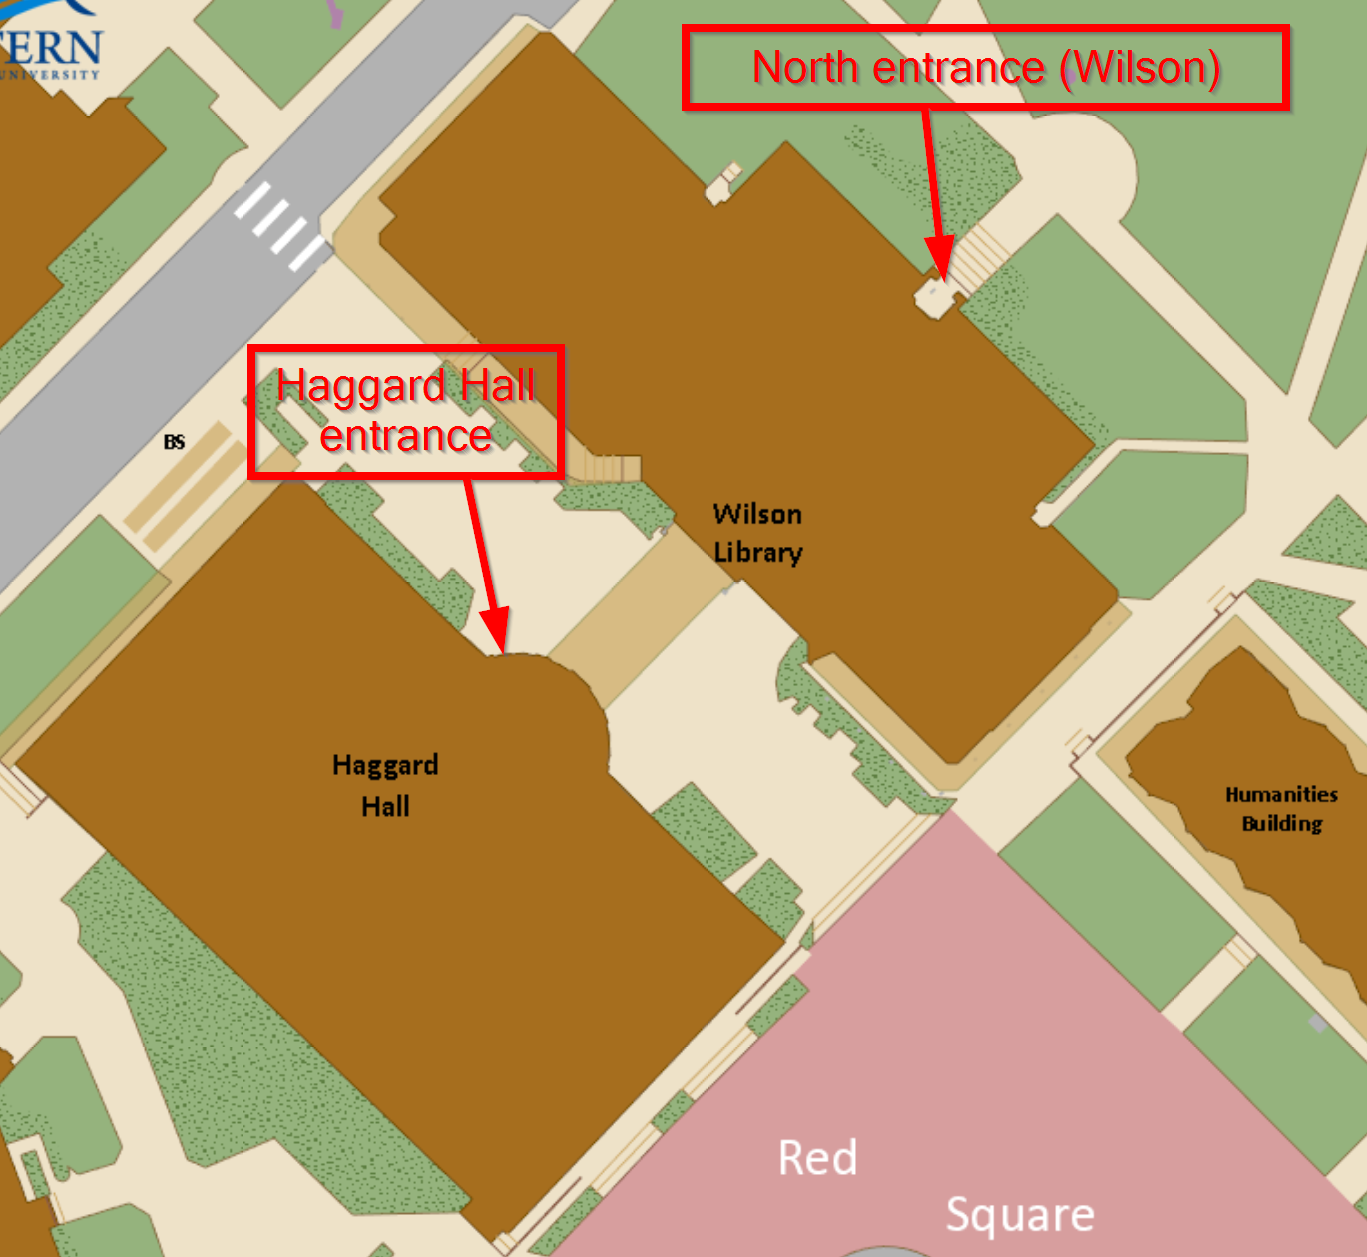 Use either the Wilson north entrance or Hggard Hall entrance to get into the library